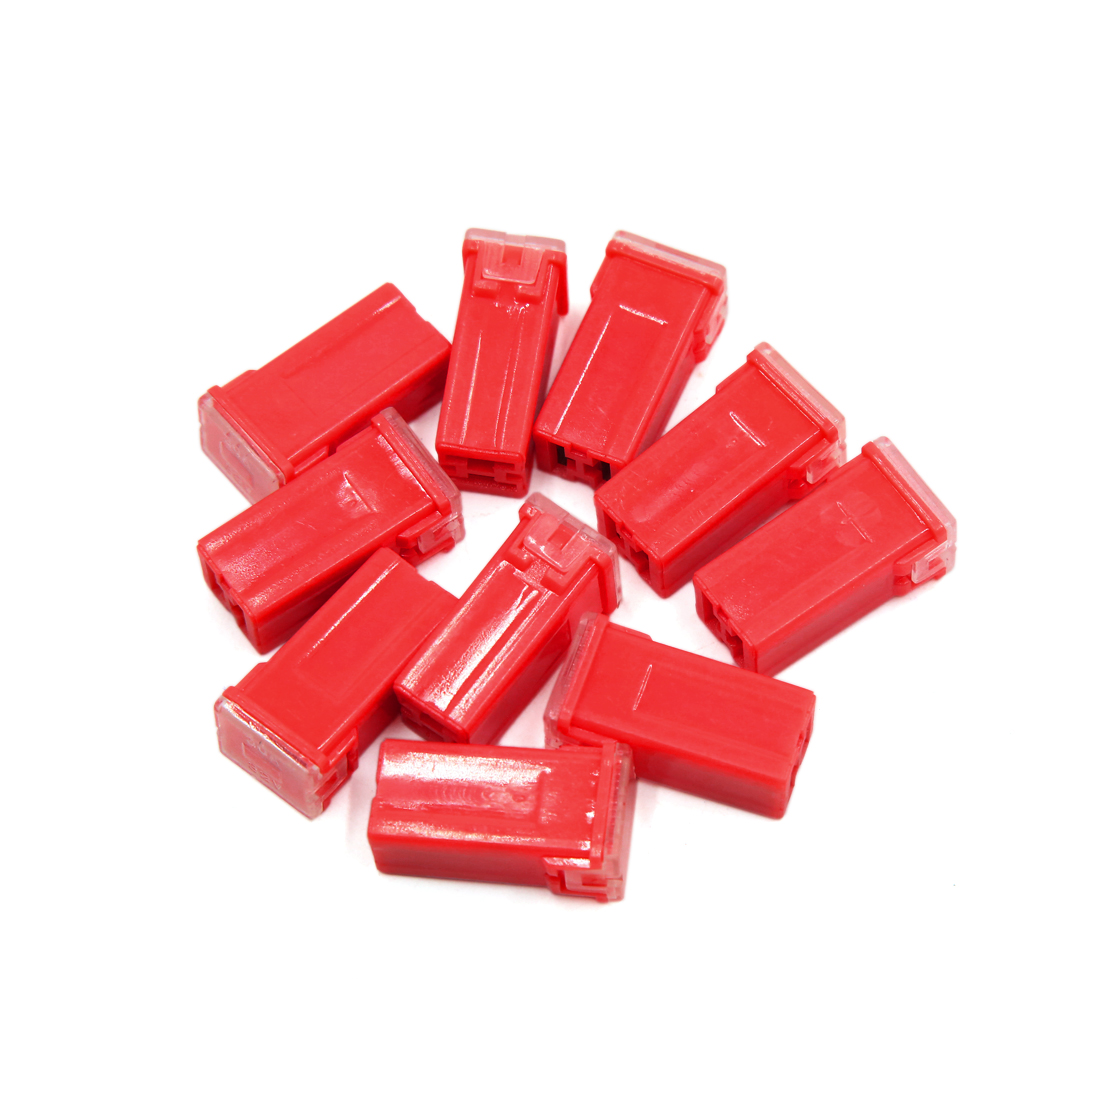 10Pcs 50A 32V Red Plastic Mini Push-in Type Female PAL Cartridge Fuses for Car - image 3 de 3